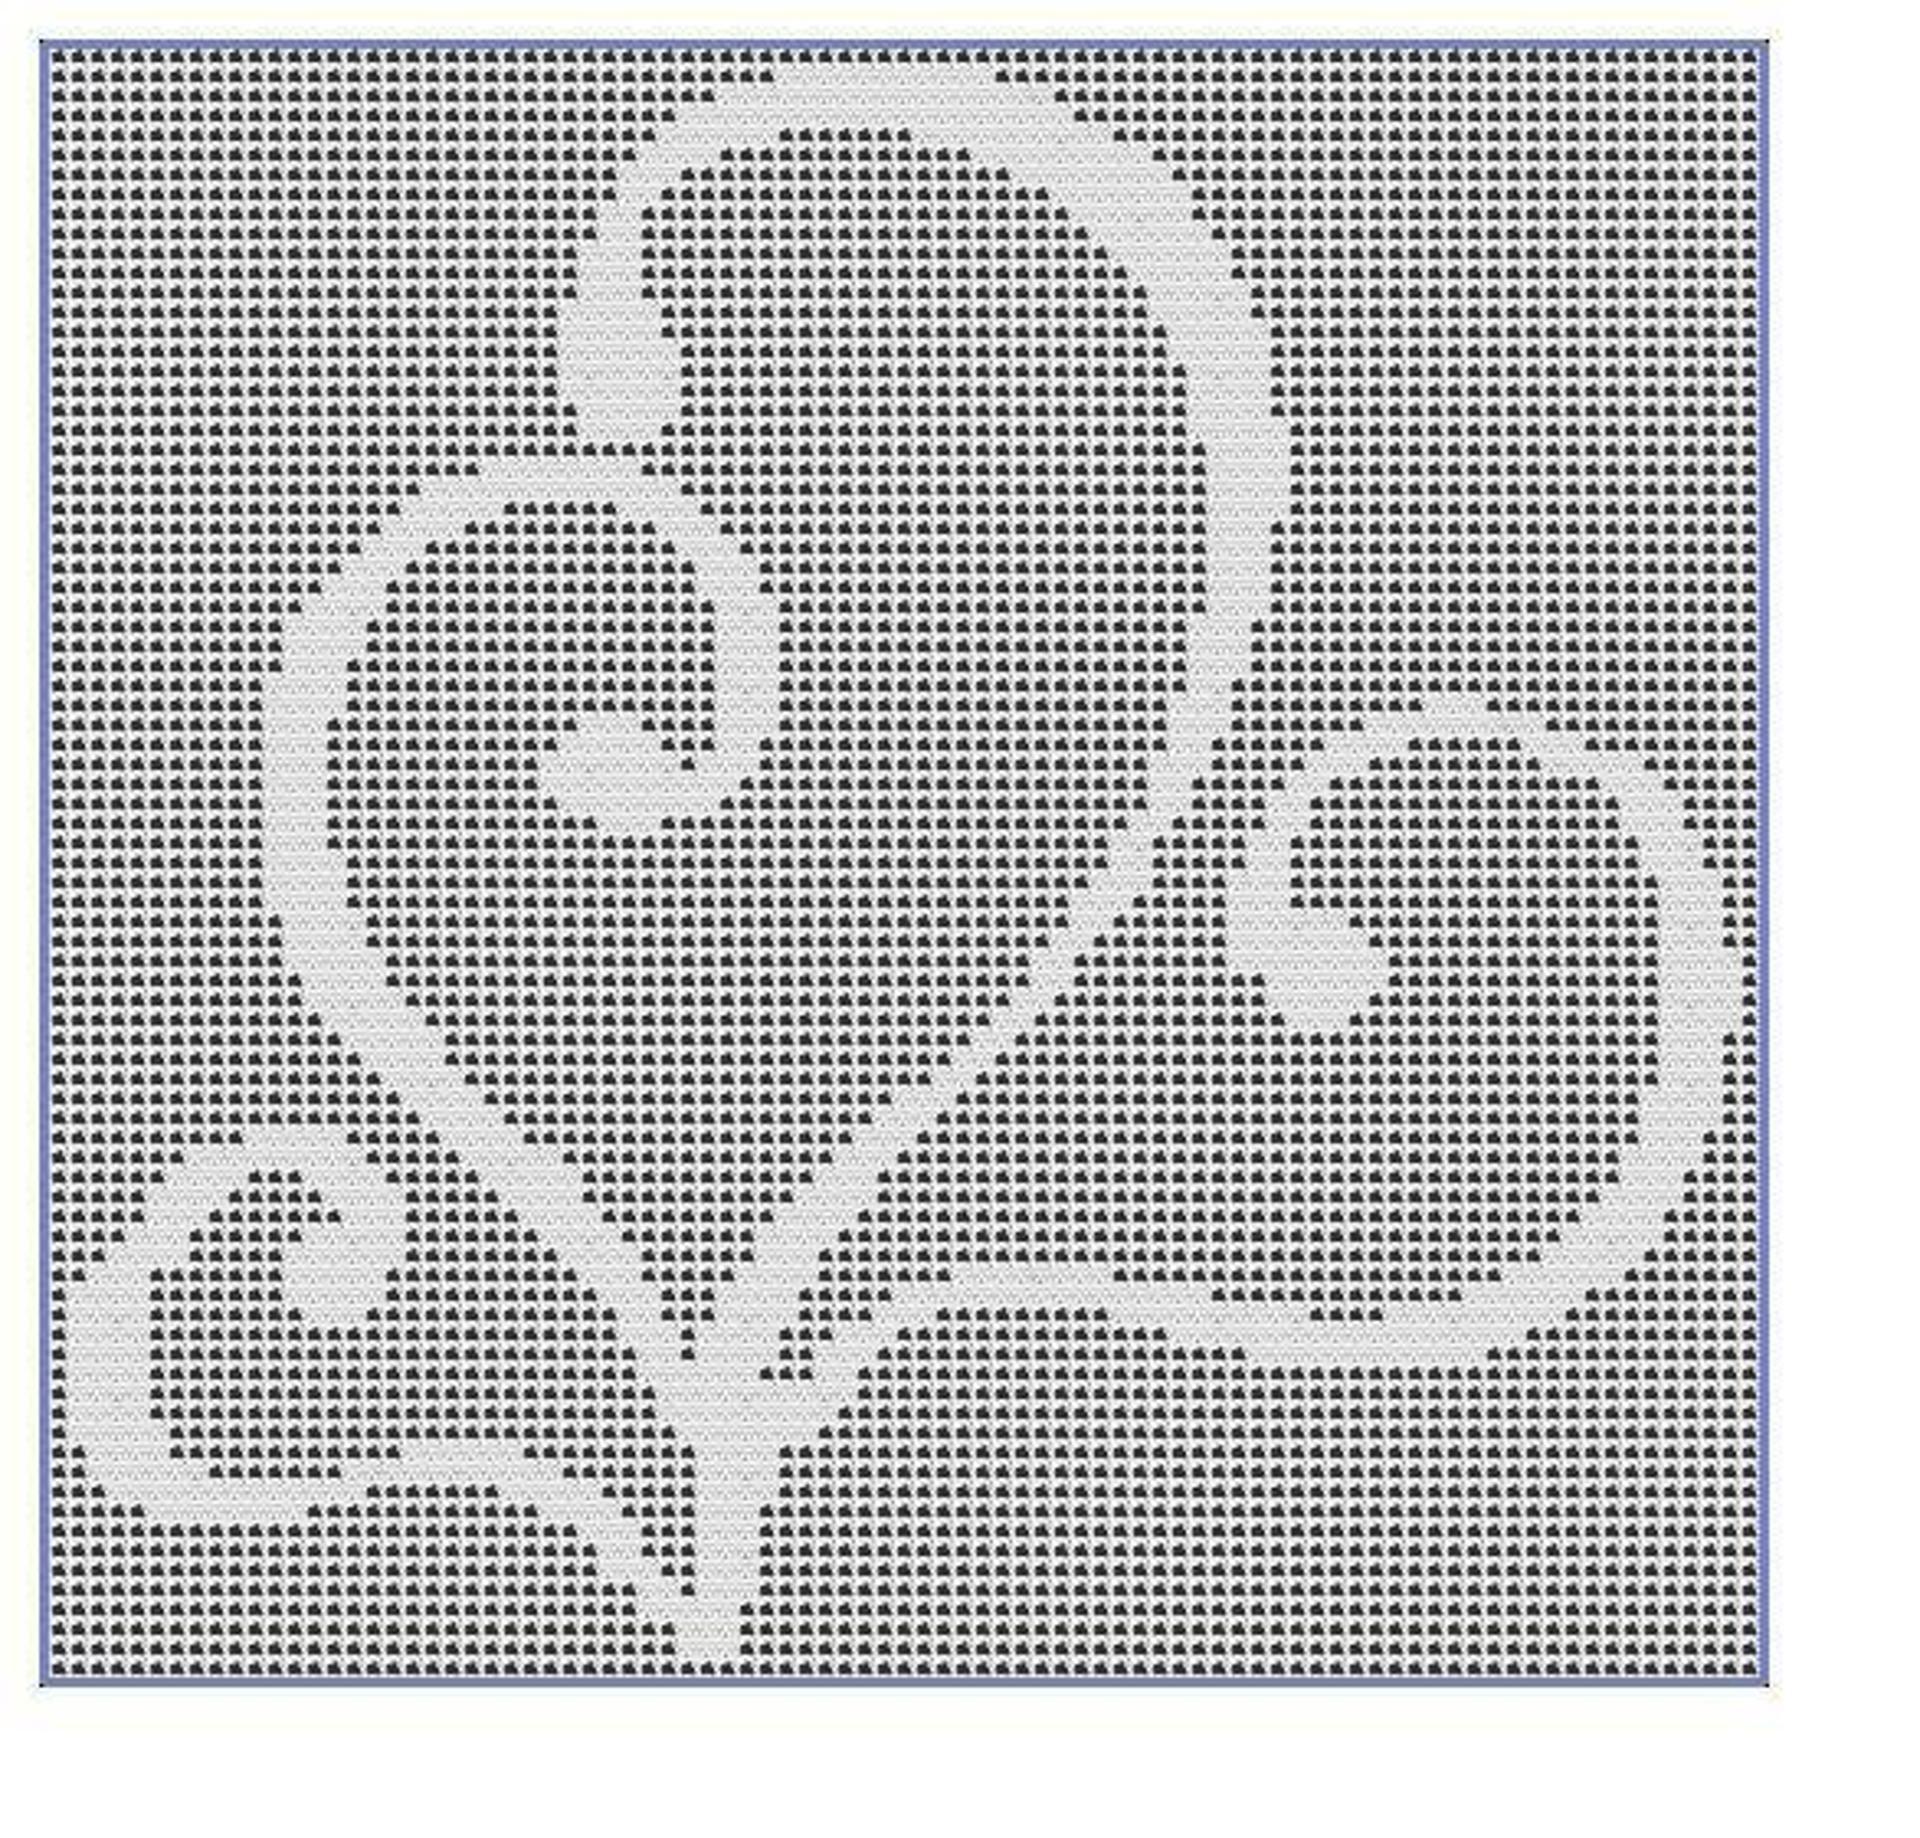 Filet Crochet Patterns Lovely 6 Filet Crochet Patterns to Help You Learn This Lace Technique Of Great 47 Photos Filet Crochet Patterns